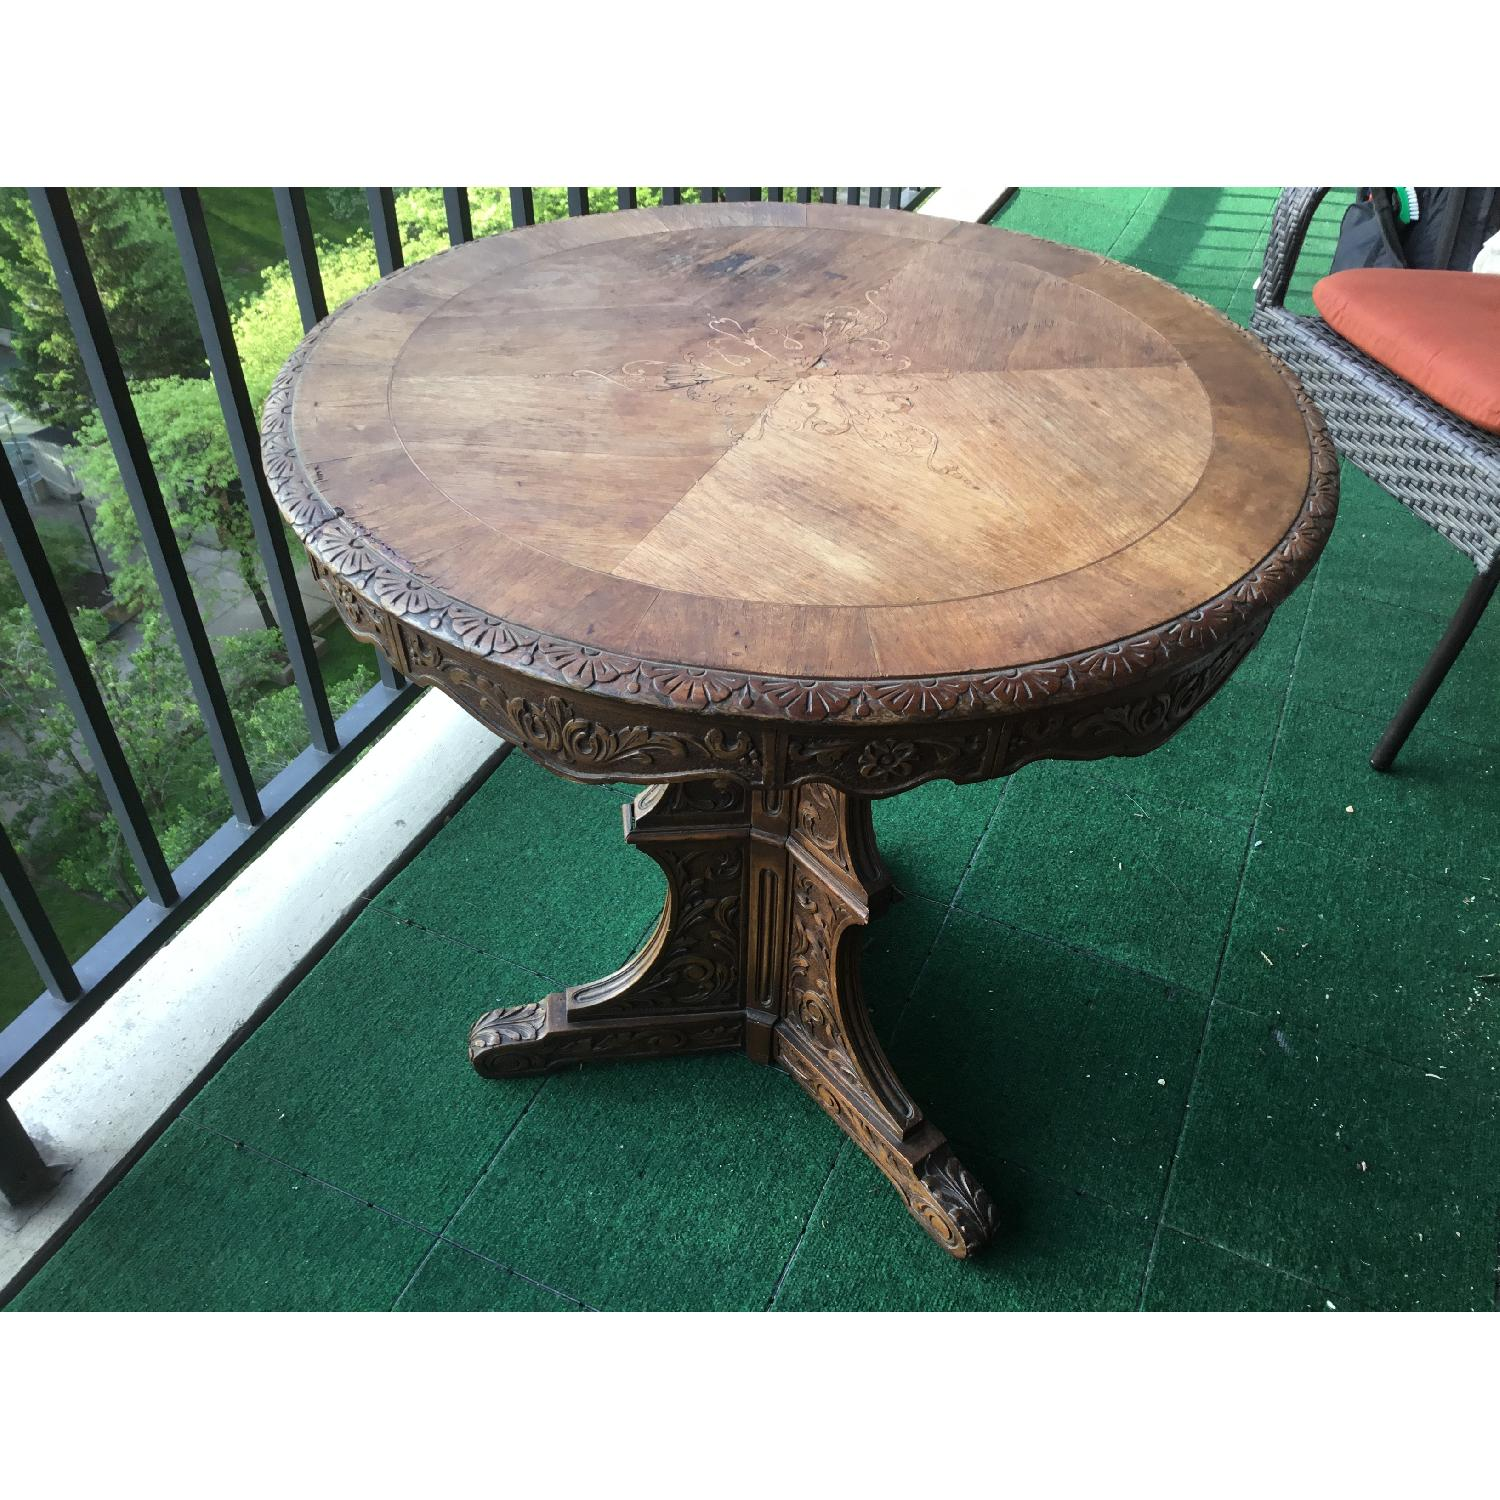 Italian Vintage Carved Wood Baroque Style Round Side Table - image-21